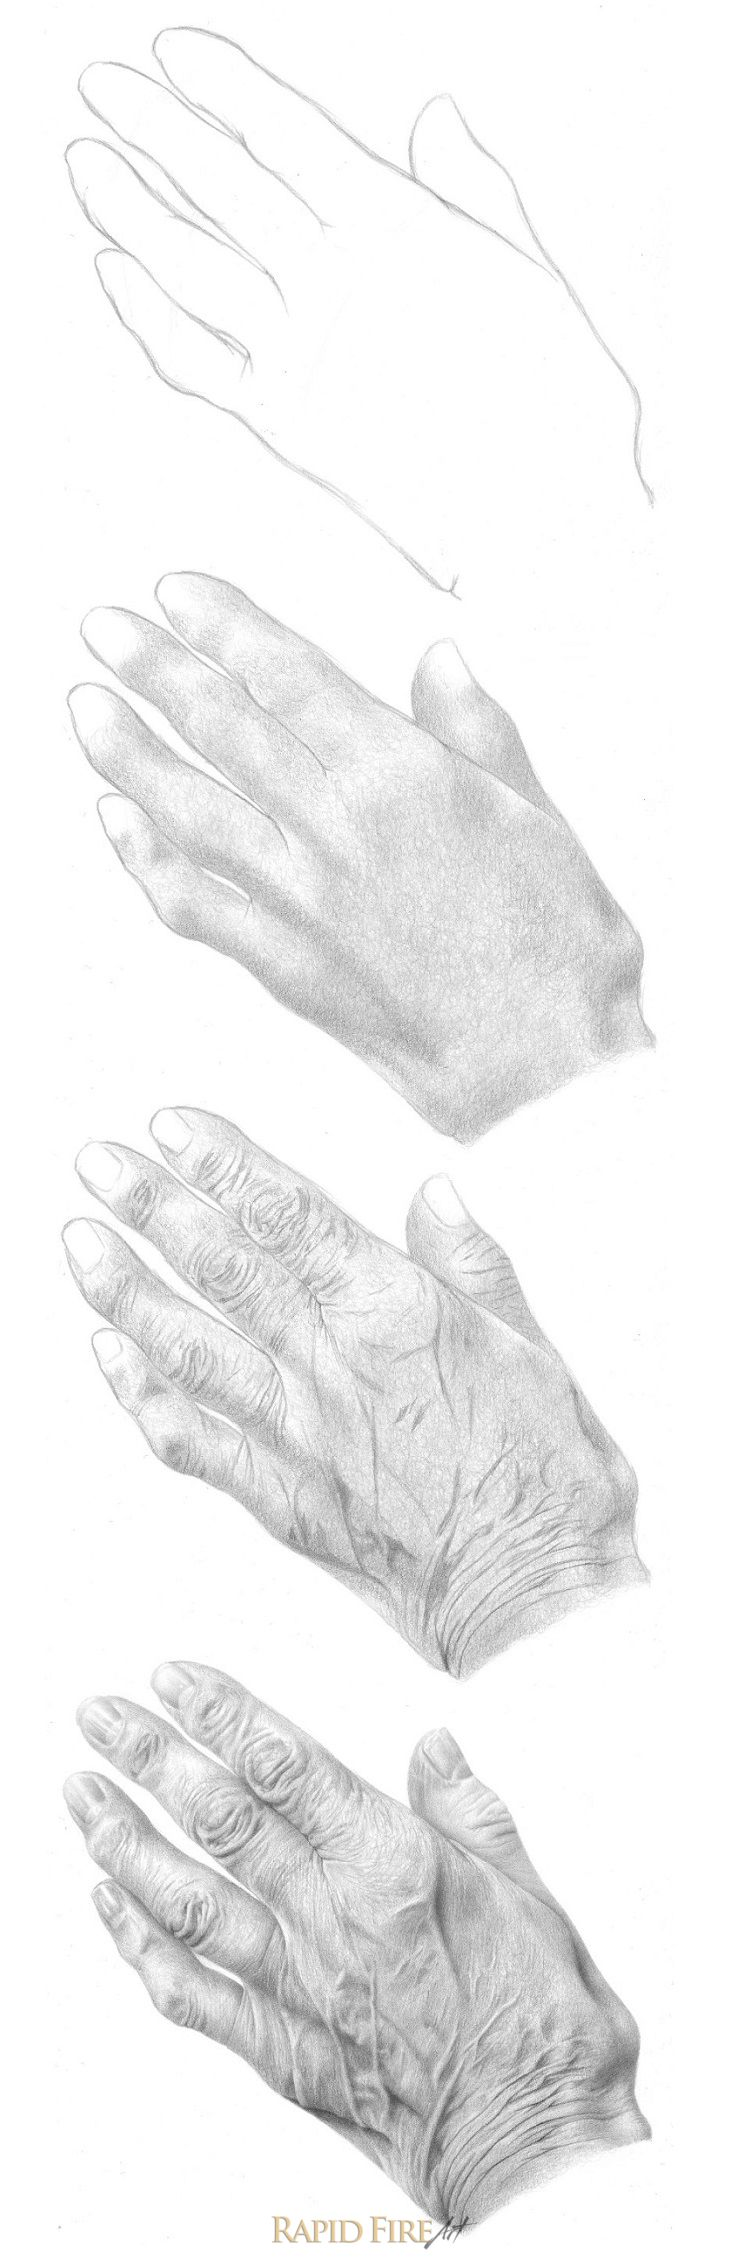 Tutorial: How to Draw Realistic Hands, Nails and Skin!  http://rapidfireart.com/2015/09/15/how-to-draw-hands-part-2-beyond-structure/